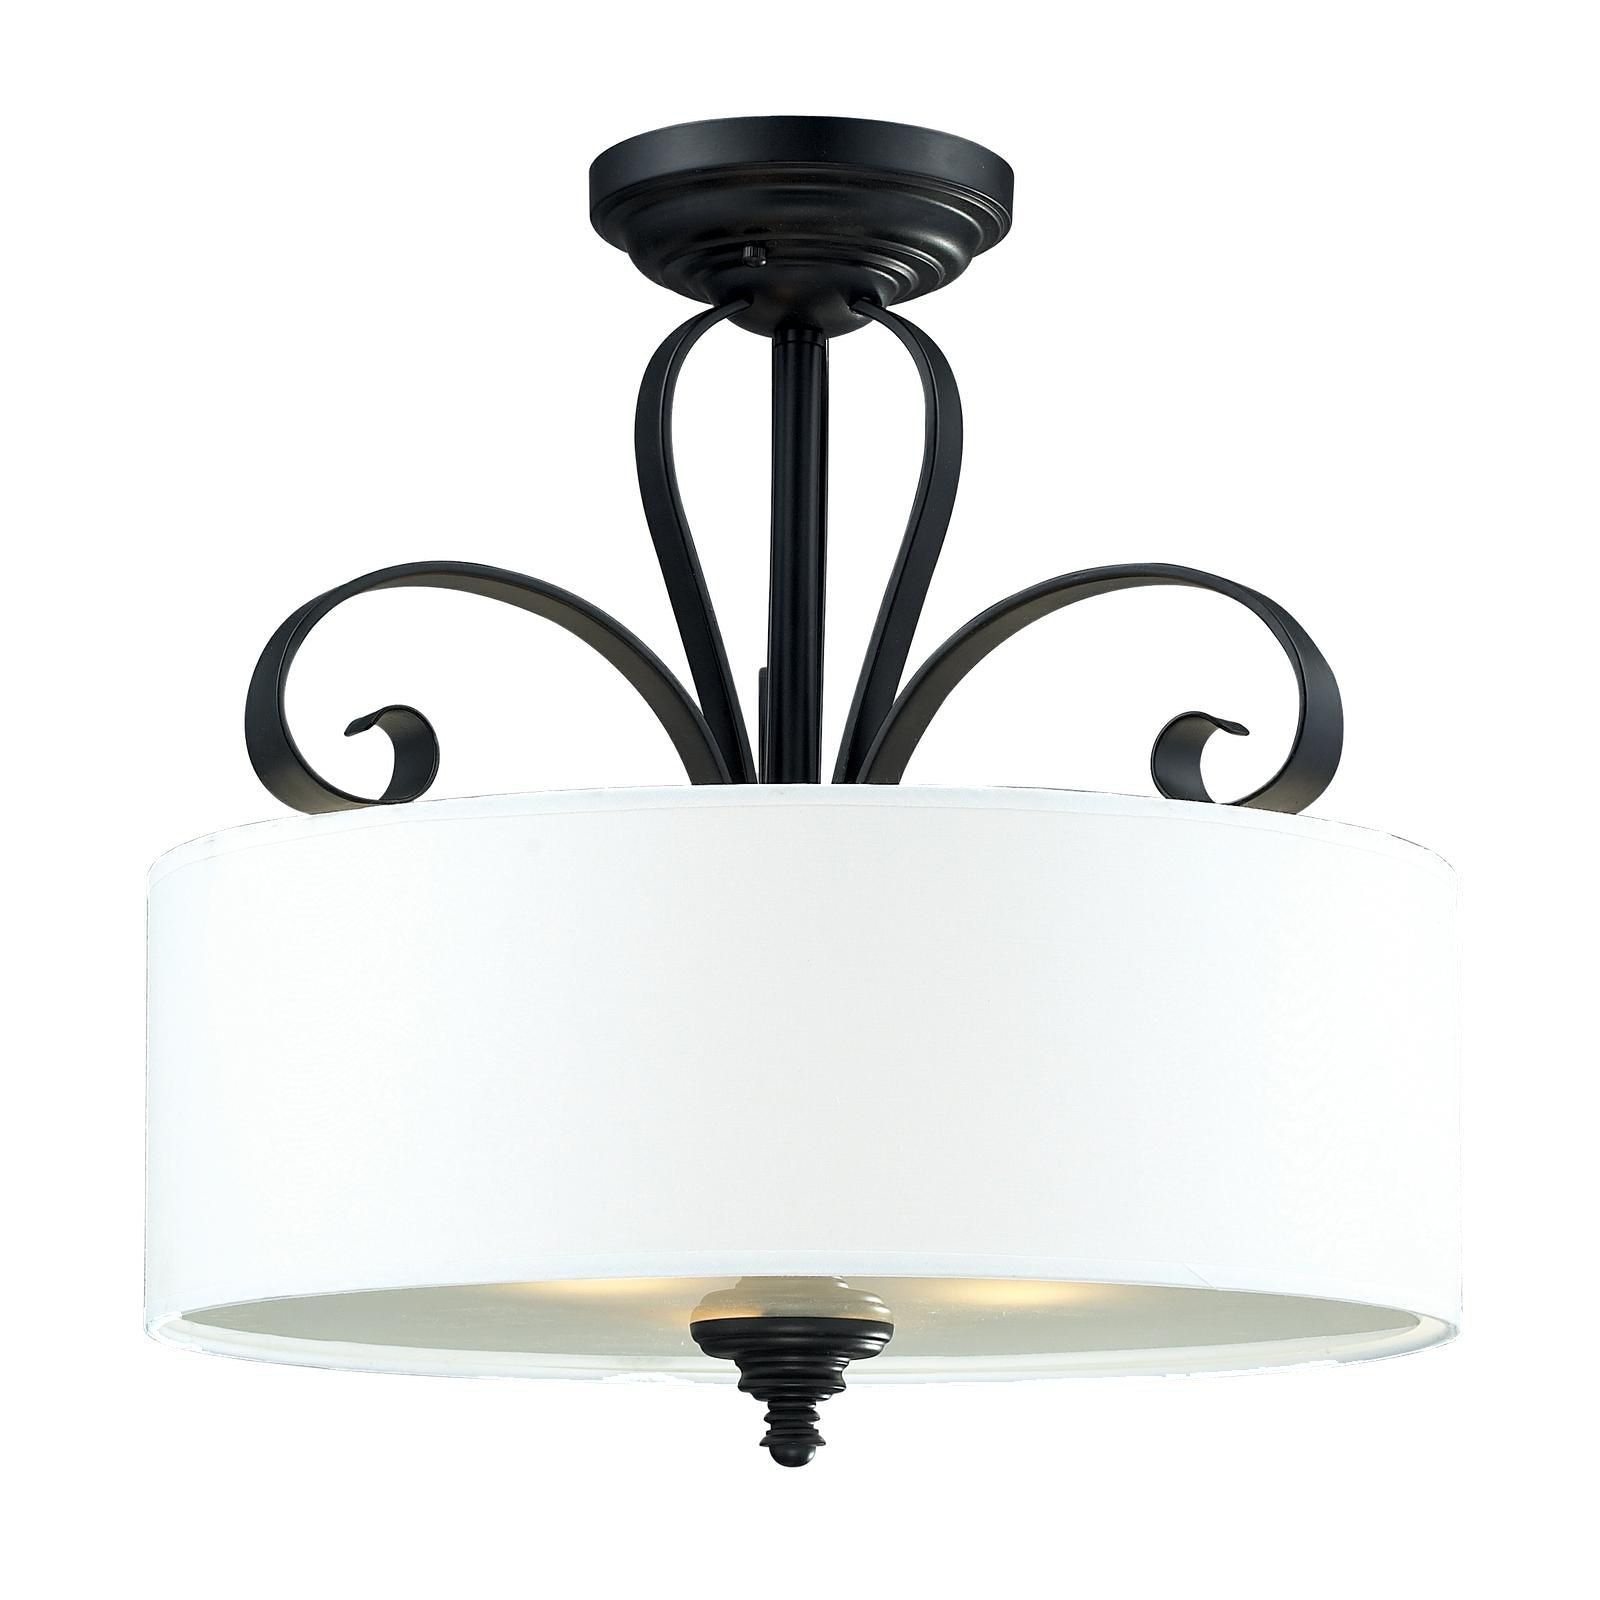 Add a touch of style to any room with this elegant flush mount light ...